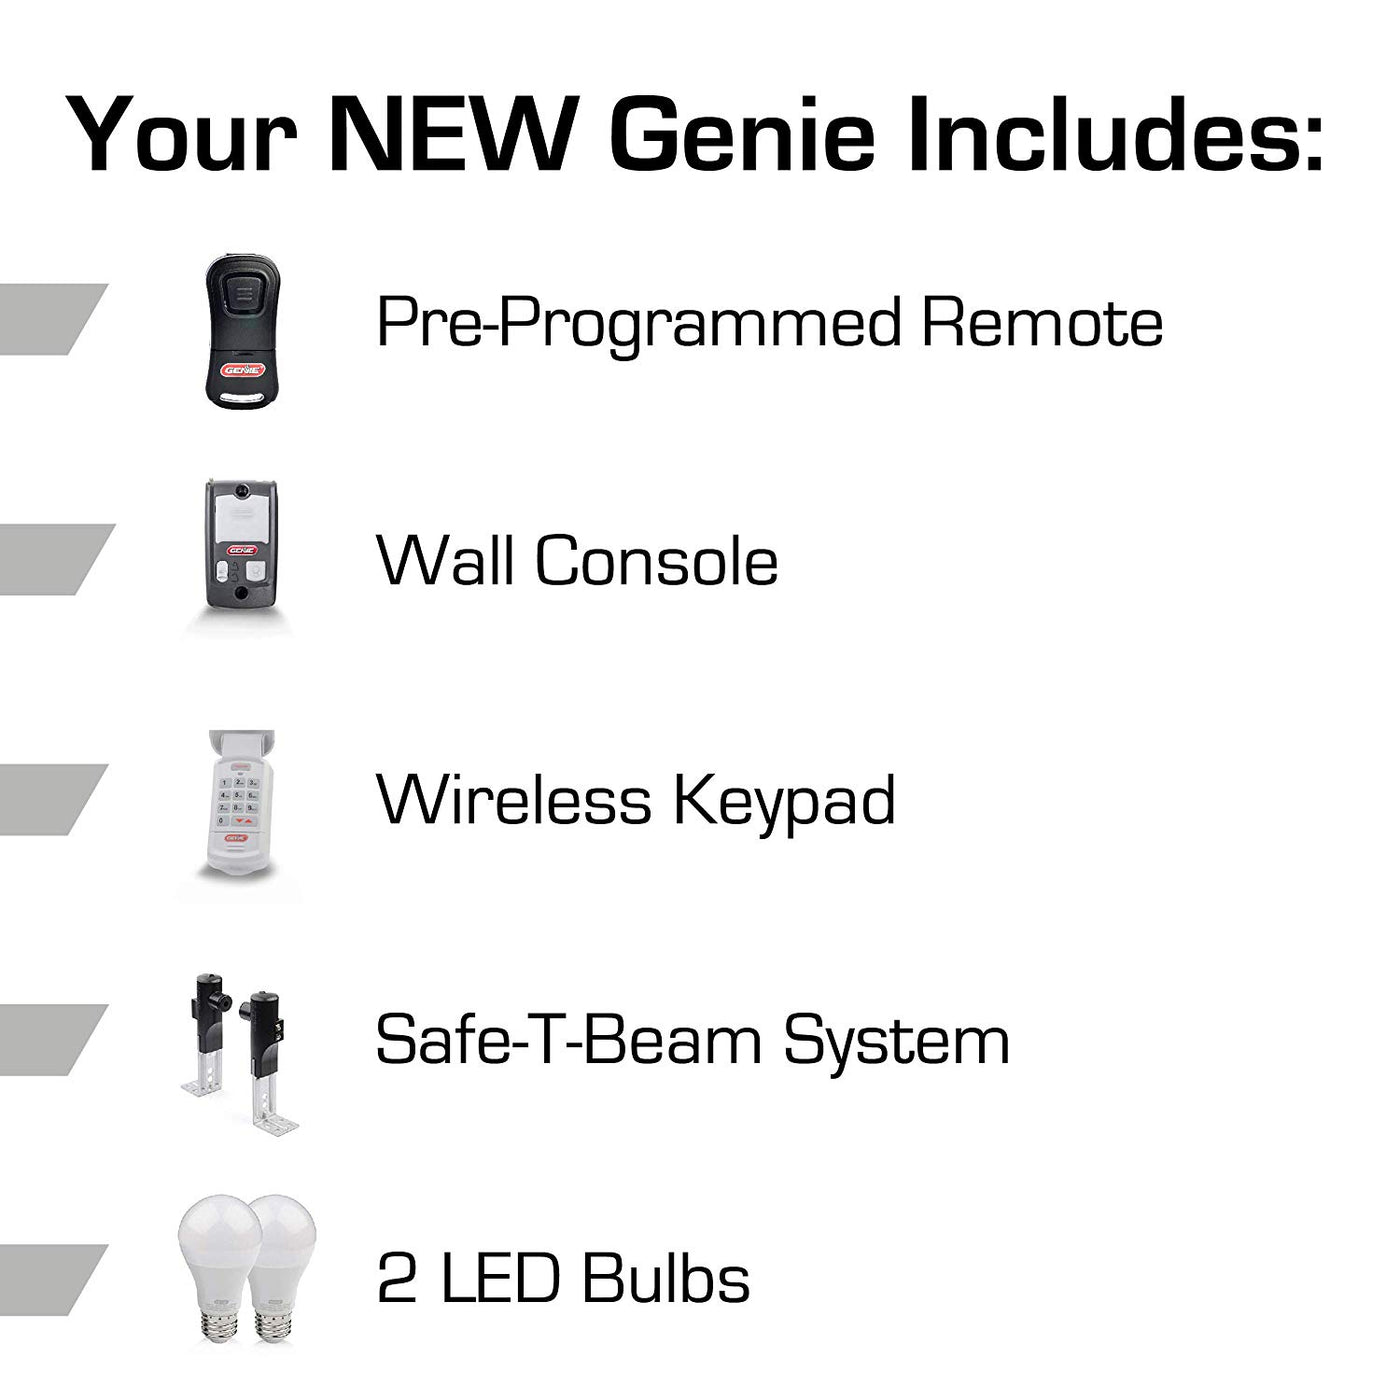 Stealth 500 Essentials Led Bulbs Included Ultra Quiet Belt Drive Gar The Genie Company